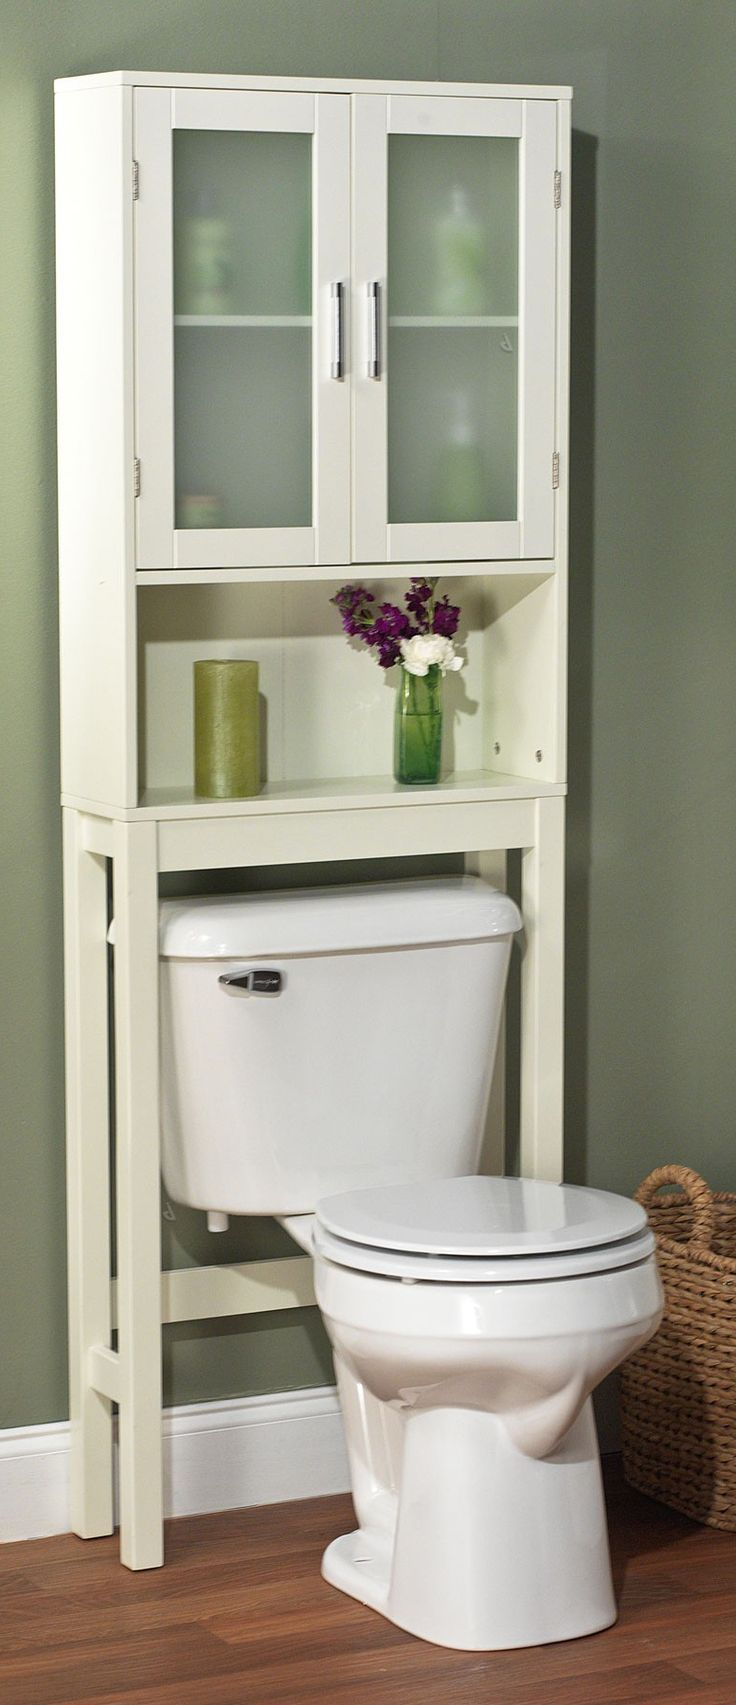 82 Best Pedestal Sink Storage Solutions Images On Pinterest | Room, Bathroom  Organization And Bathroom Ideas